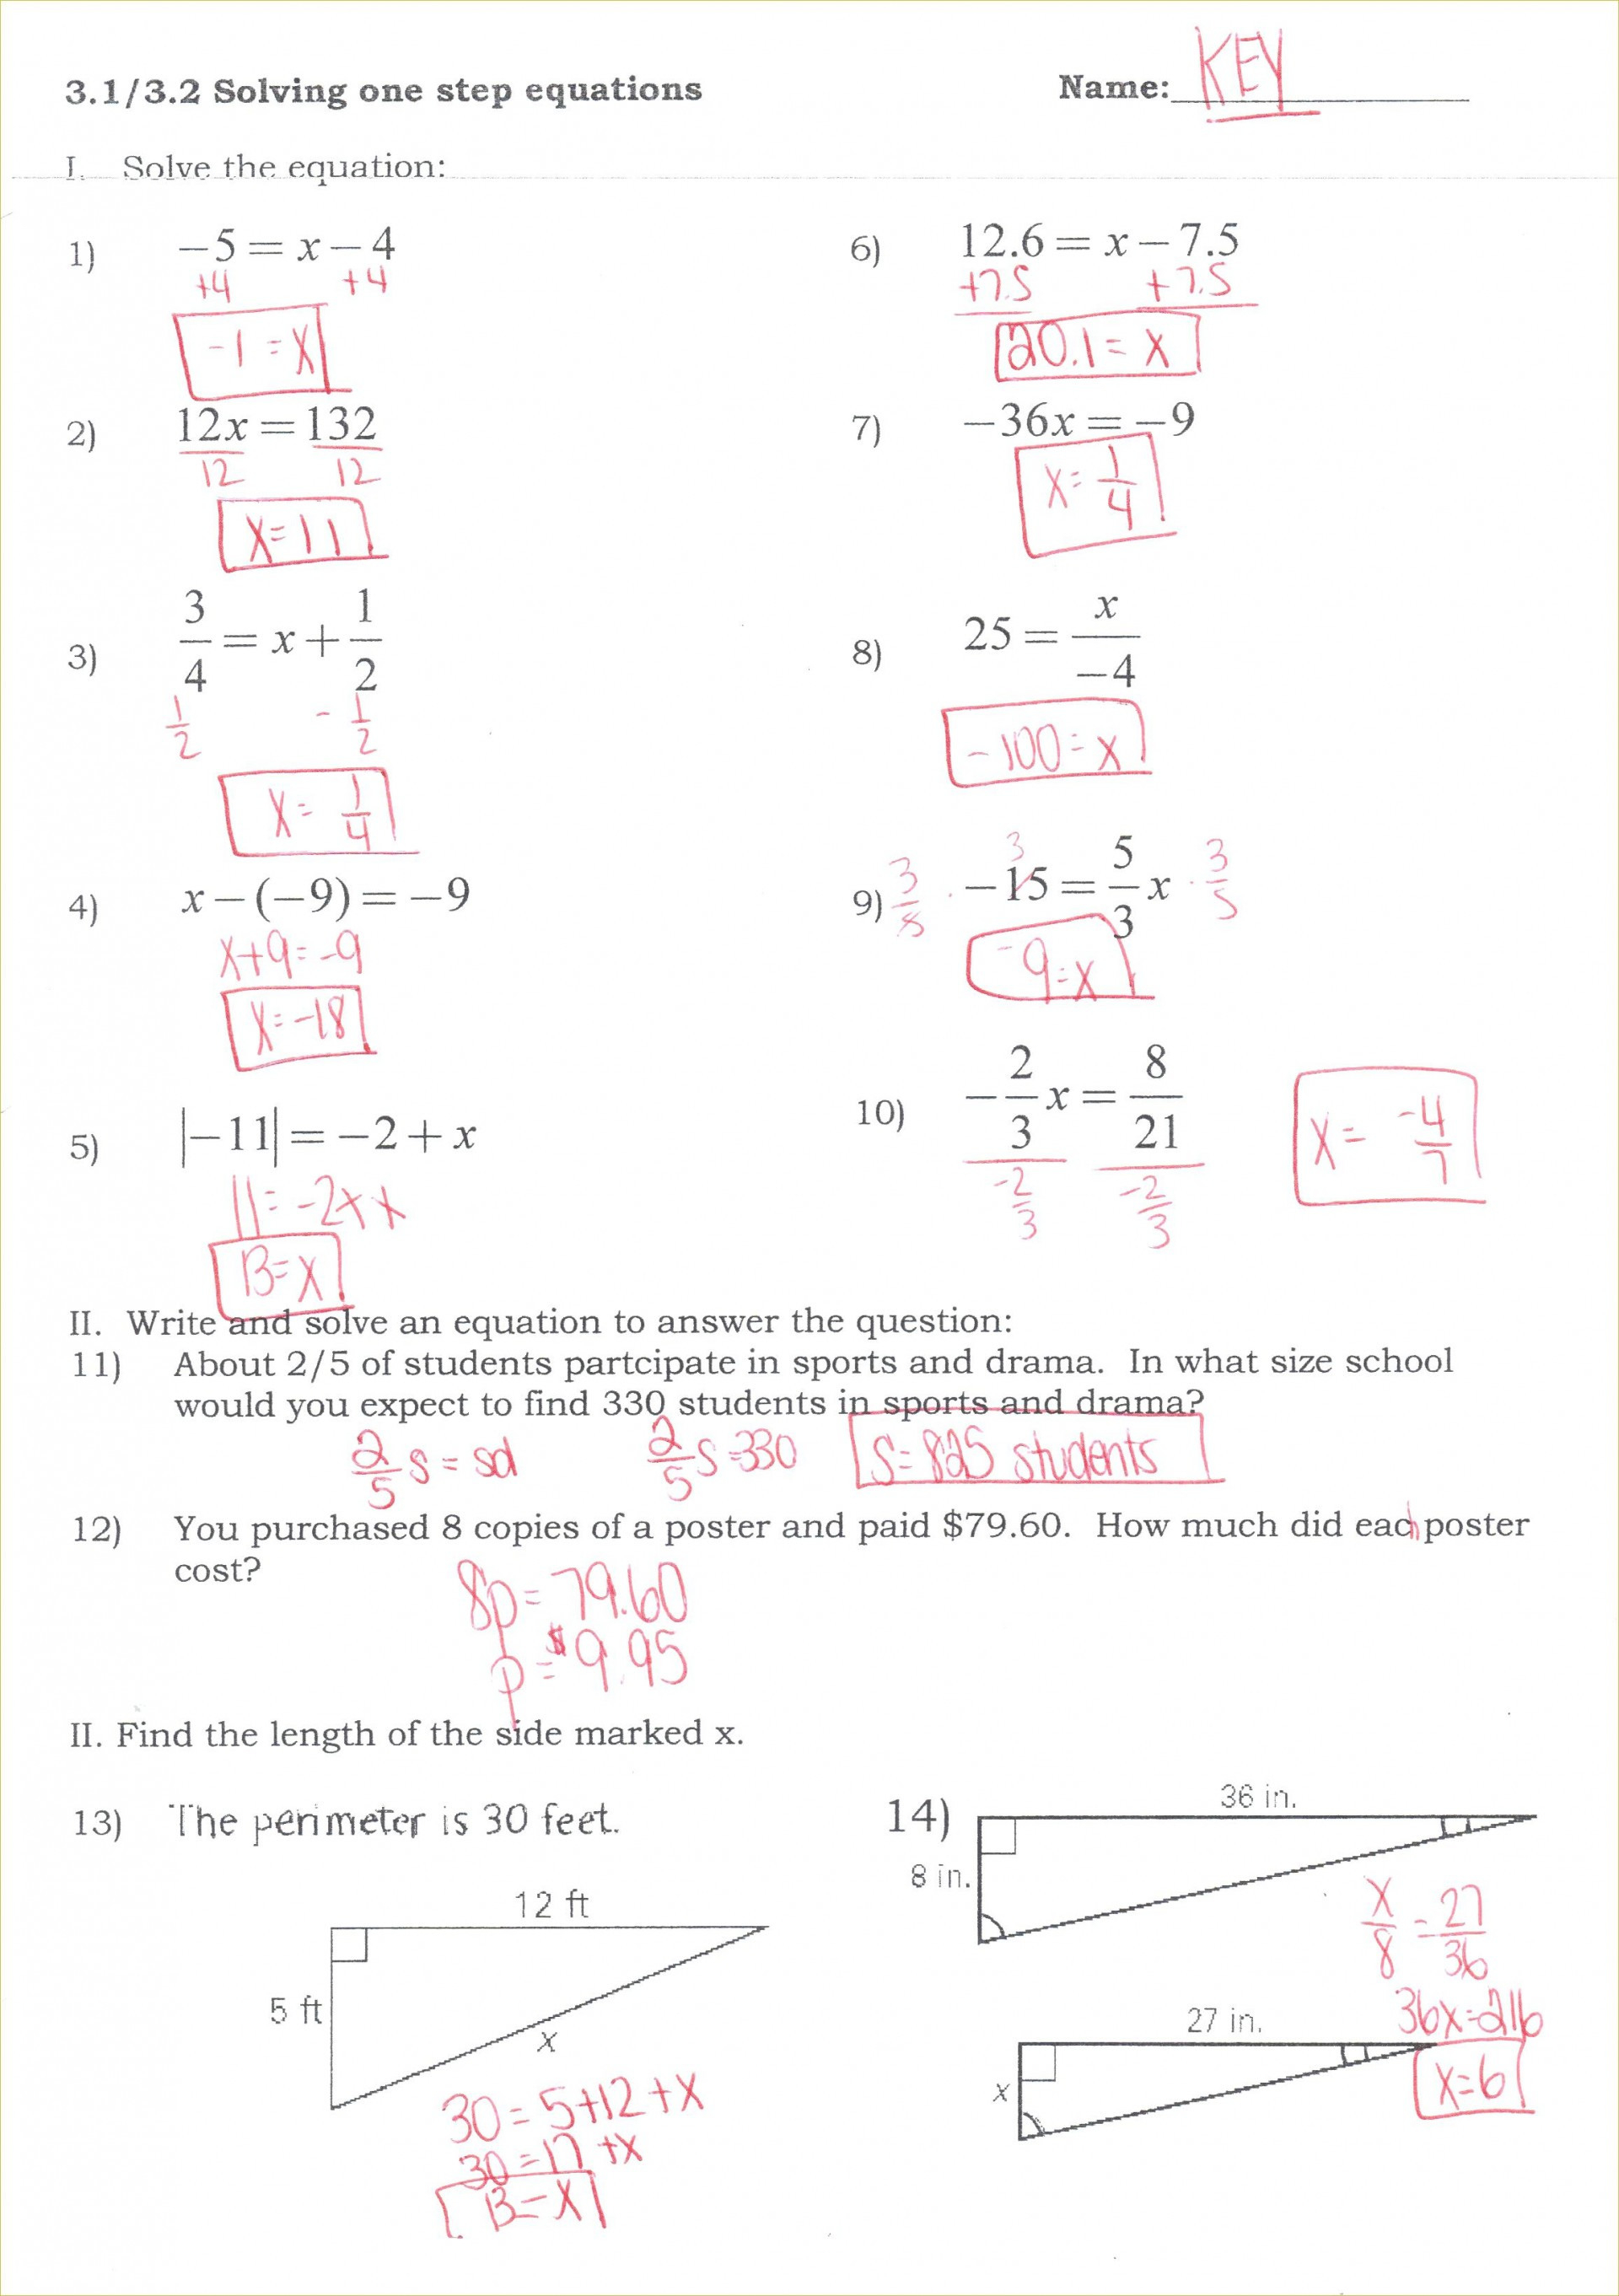 037 Systems Of Equations Word Problems Printablen